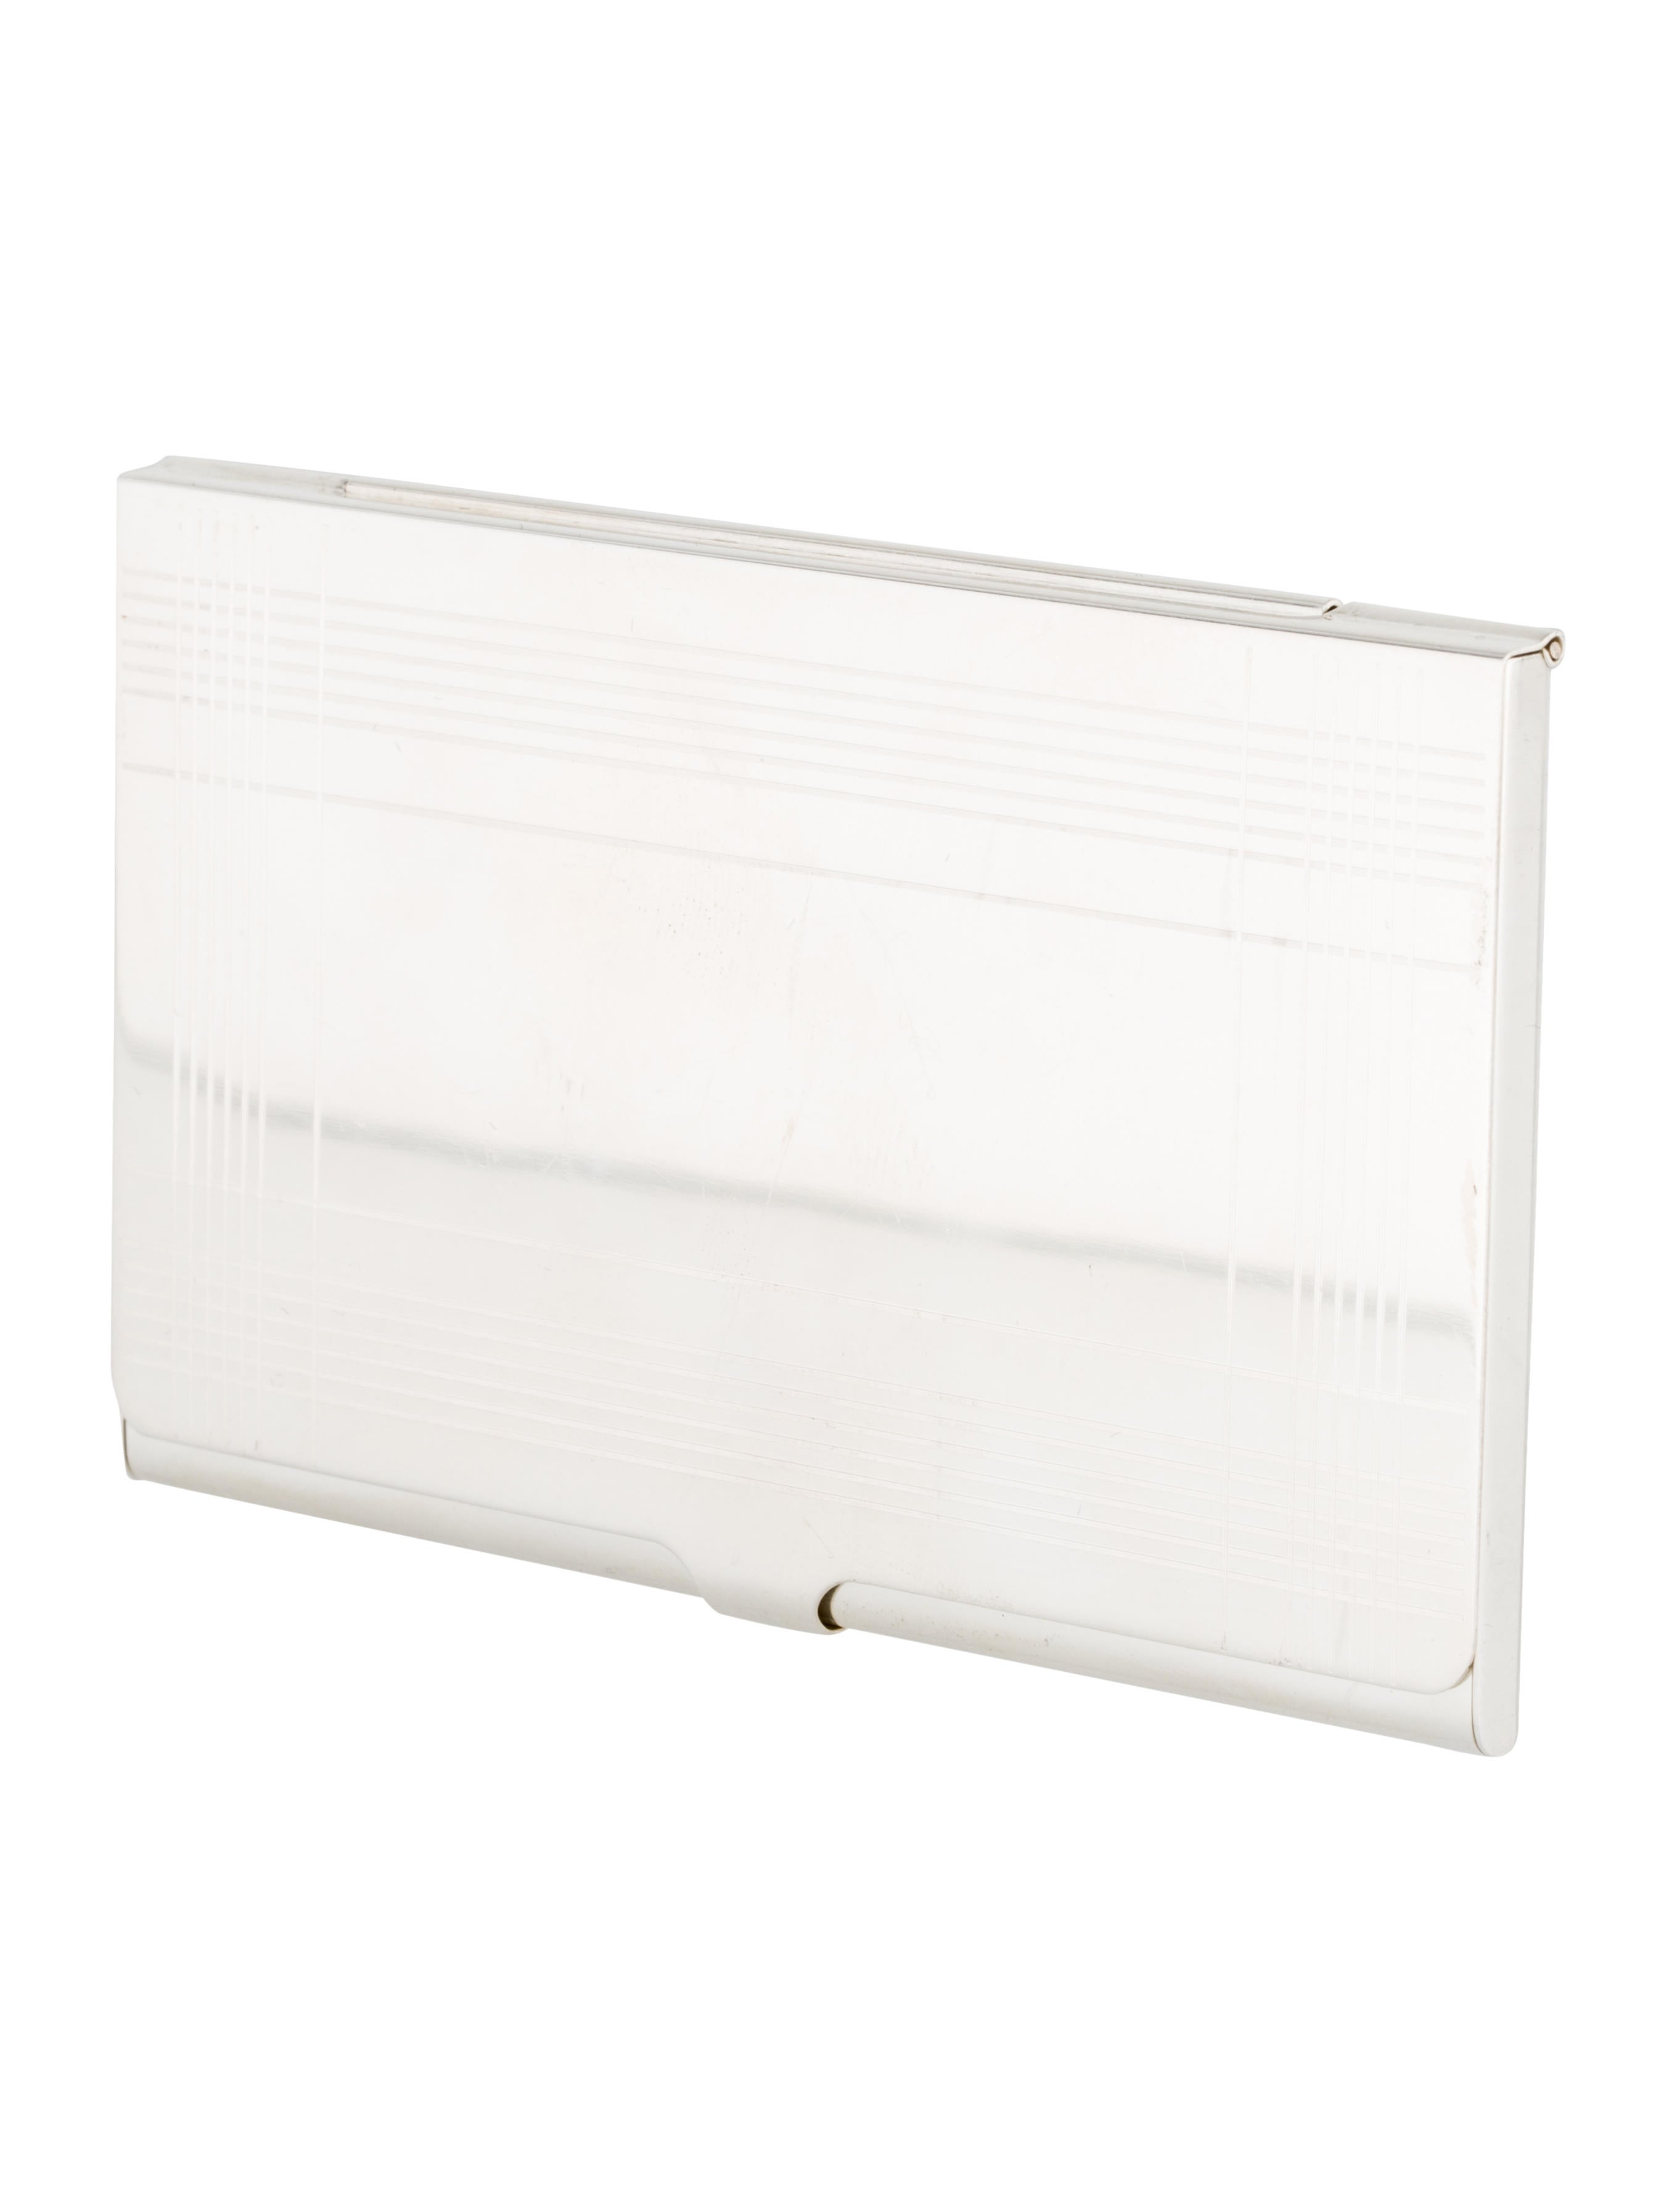 Tiffany co sterling business card holder decor and for Tiffany business card case